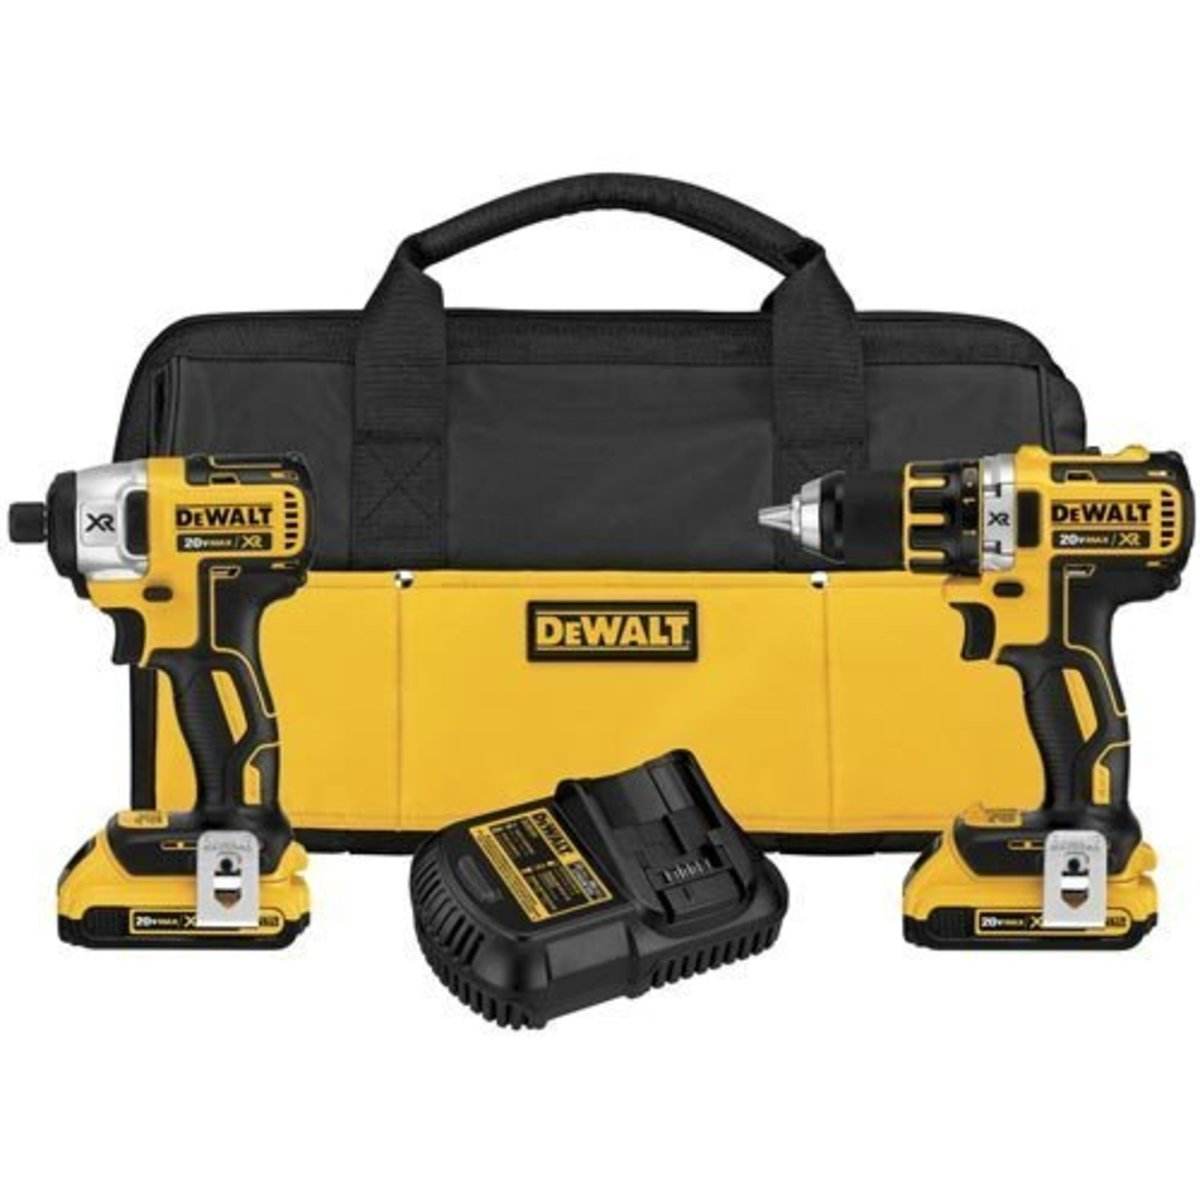 battery-operated-a-ranking-of-4-cordless-impactdrill-systems